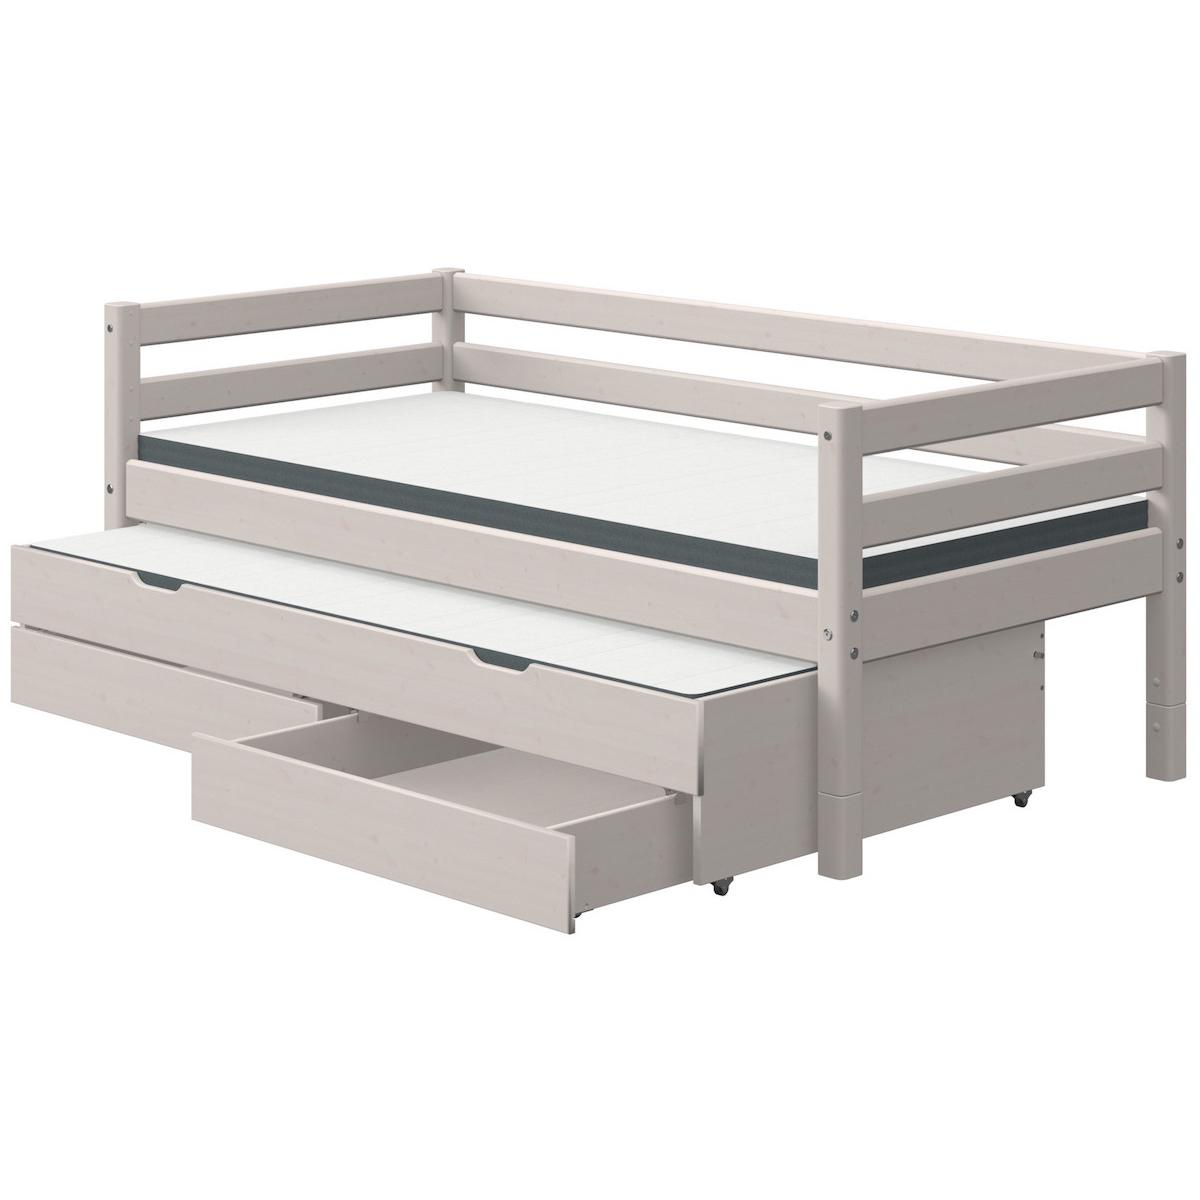 Lit banquette 90x200cm lit gigogne 2 tiroirs CLASSIC Flexa grey washed